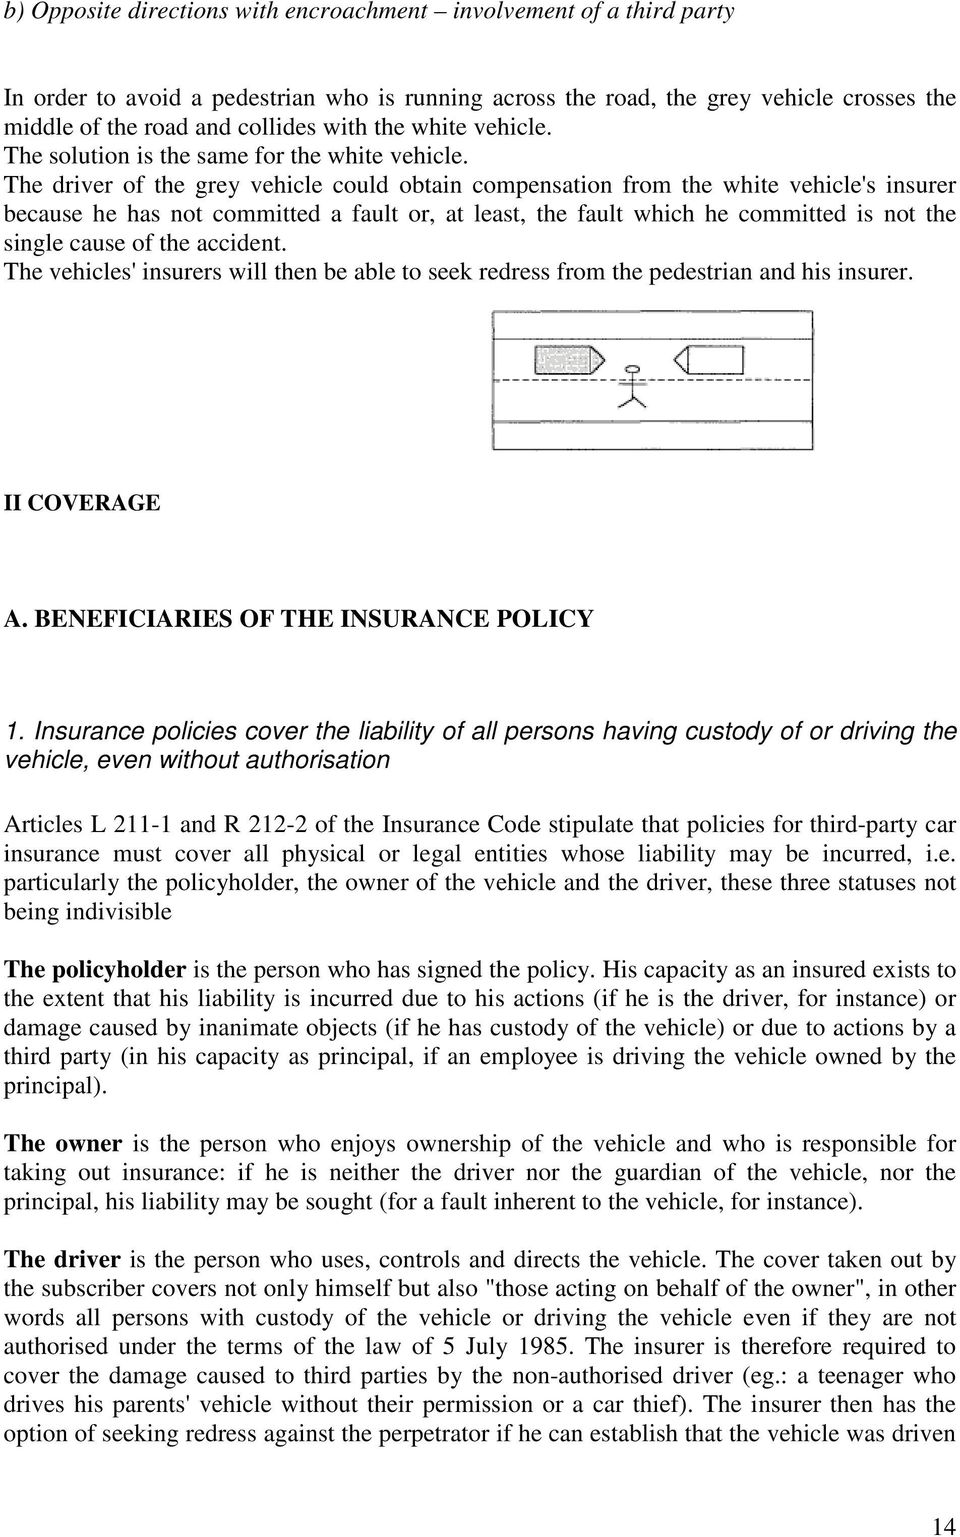 The driver of the grey vehicle could obtain compensation from the white vehicle's insurer because he has not committed a fault or, at least, the fault which he committed is not the single cause of